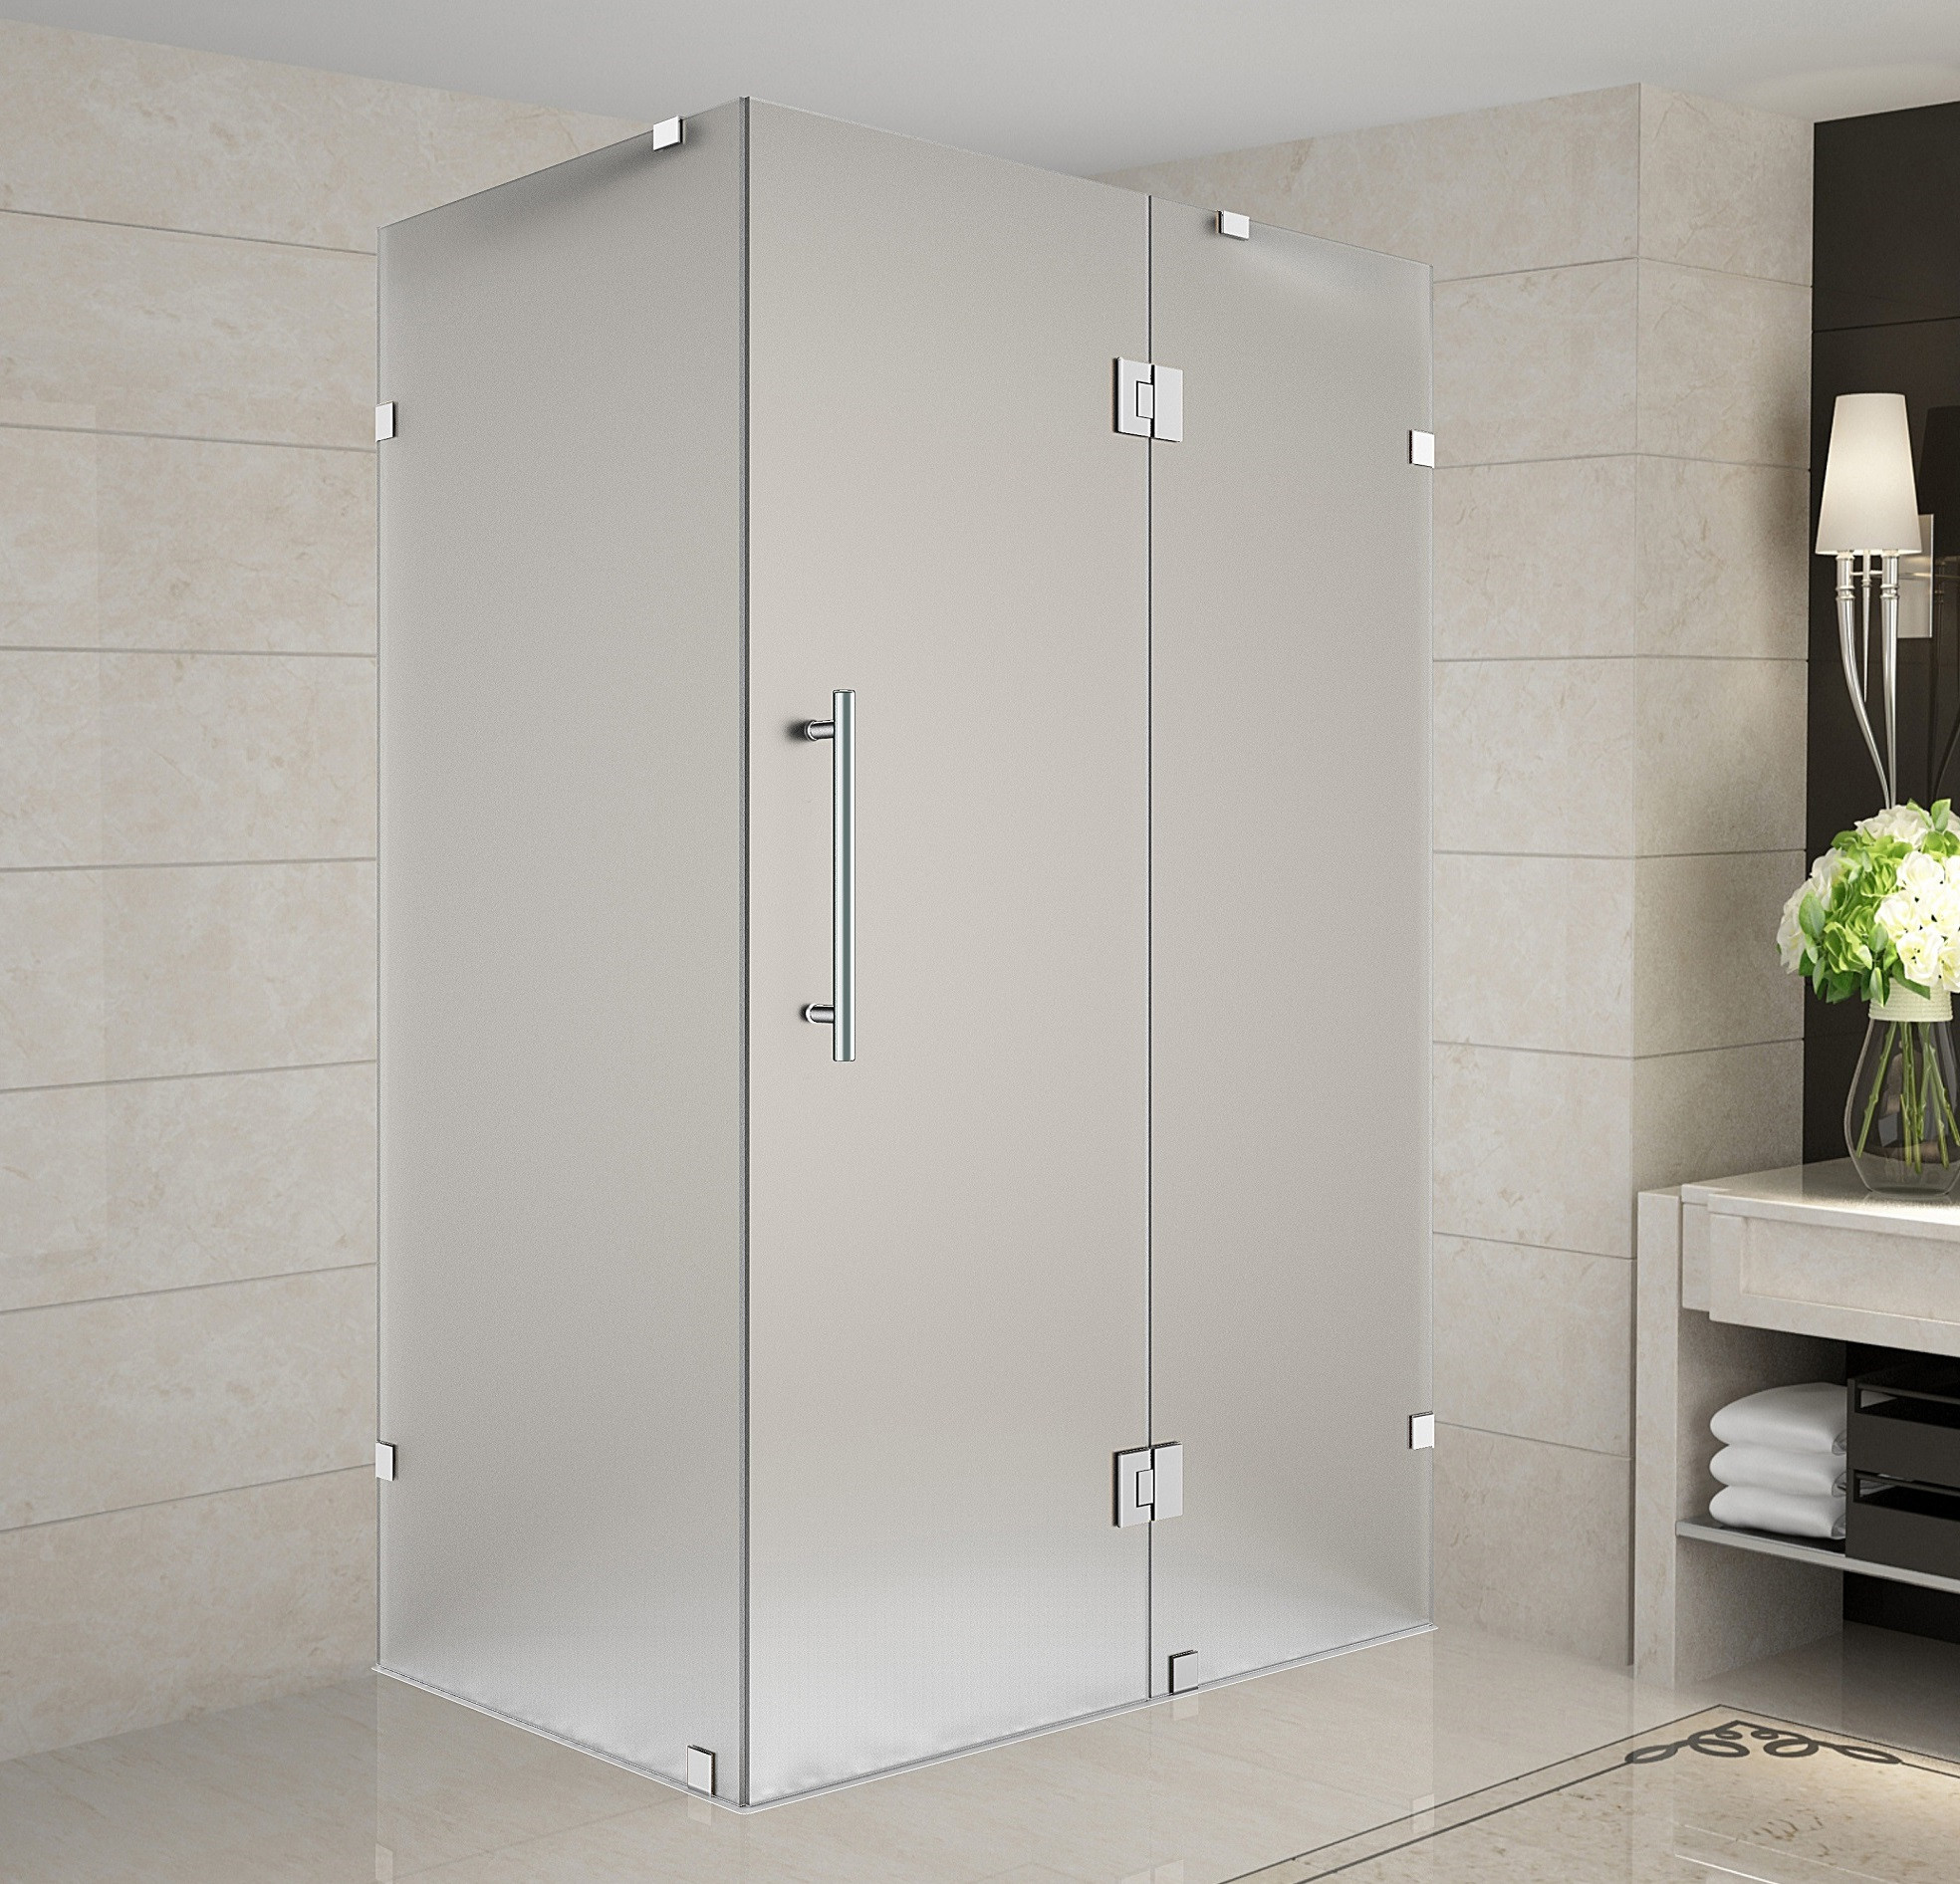 Aston Global SEN987F-SS-3238-10 Frameless Frosted Glass Shower Enclosure In Stainless Steel